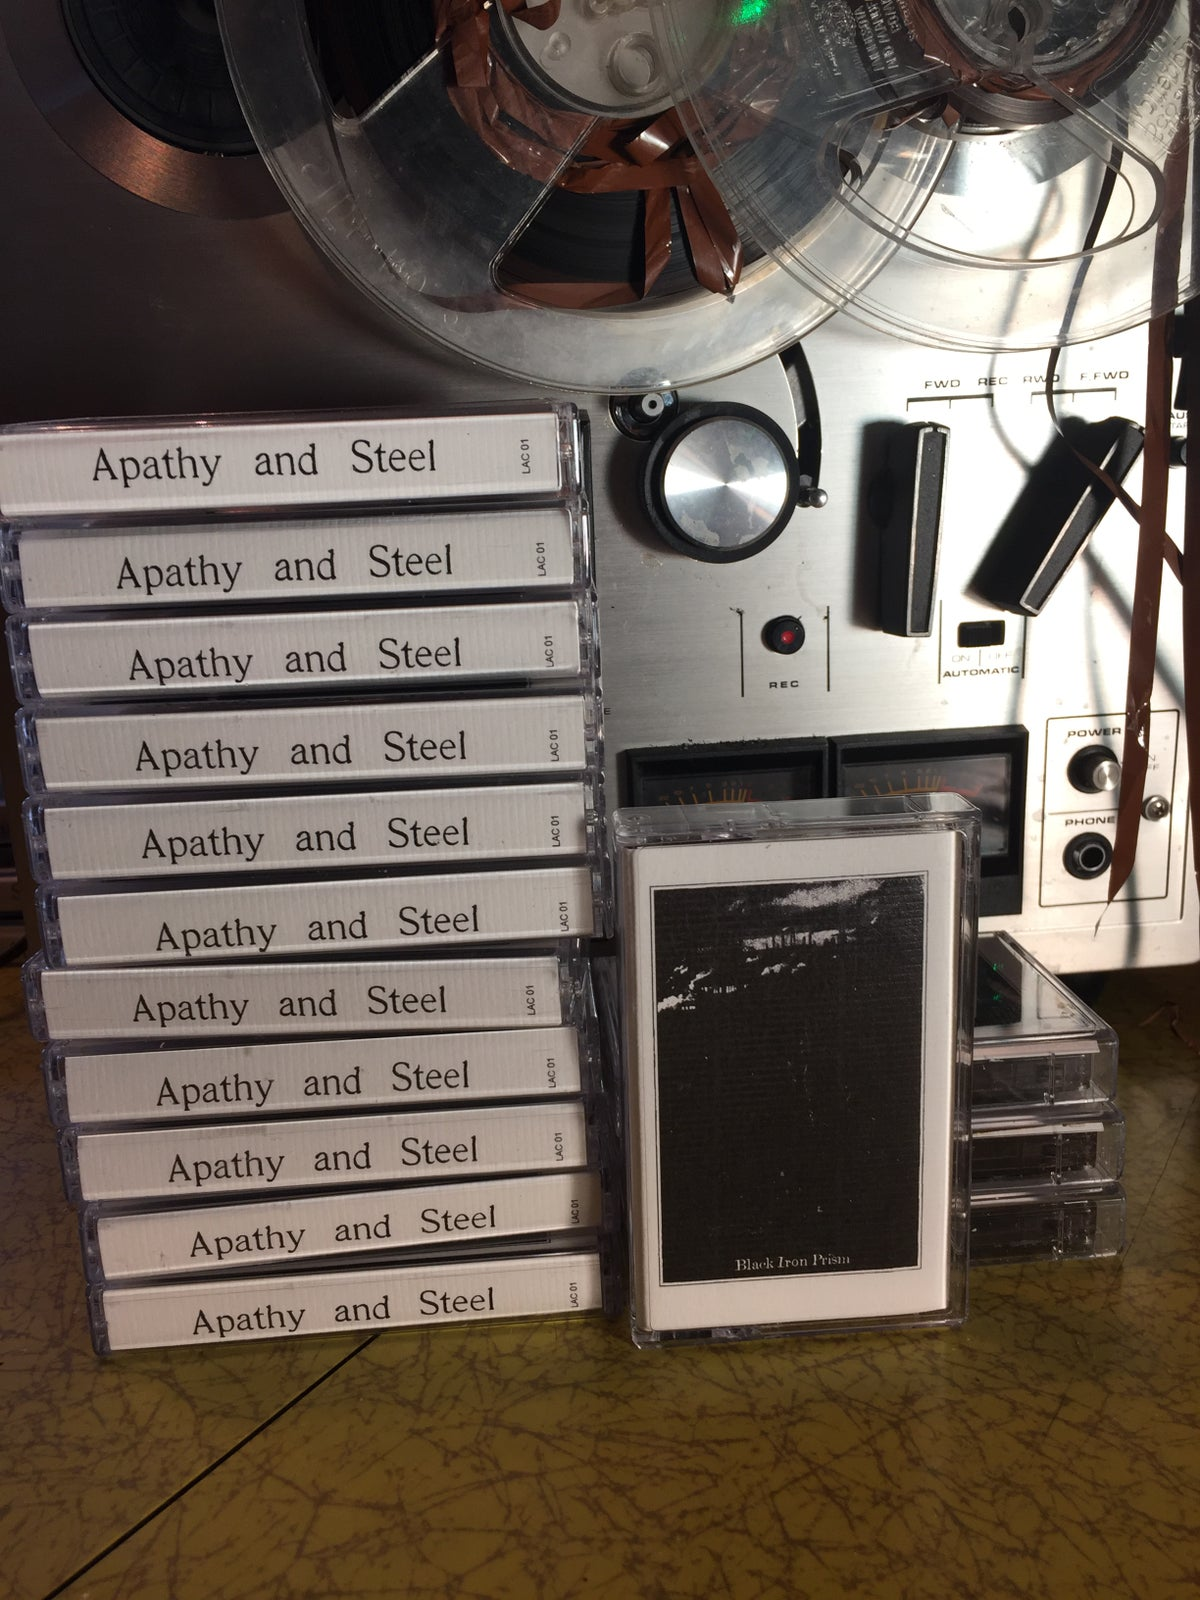 Image of Apathy & Steel - Black Iron Prism